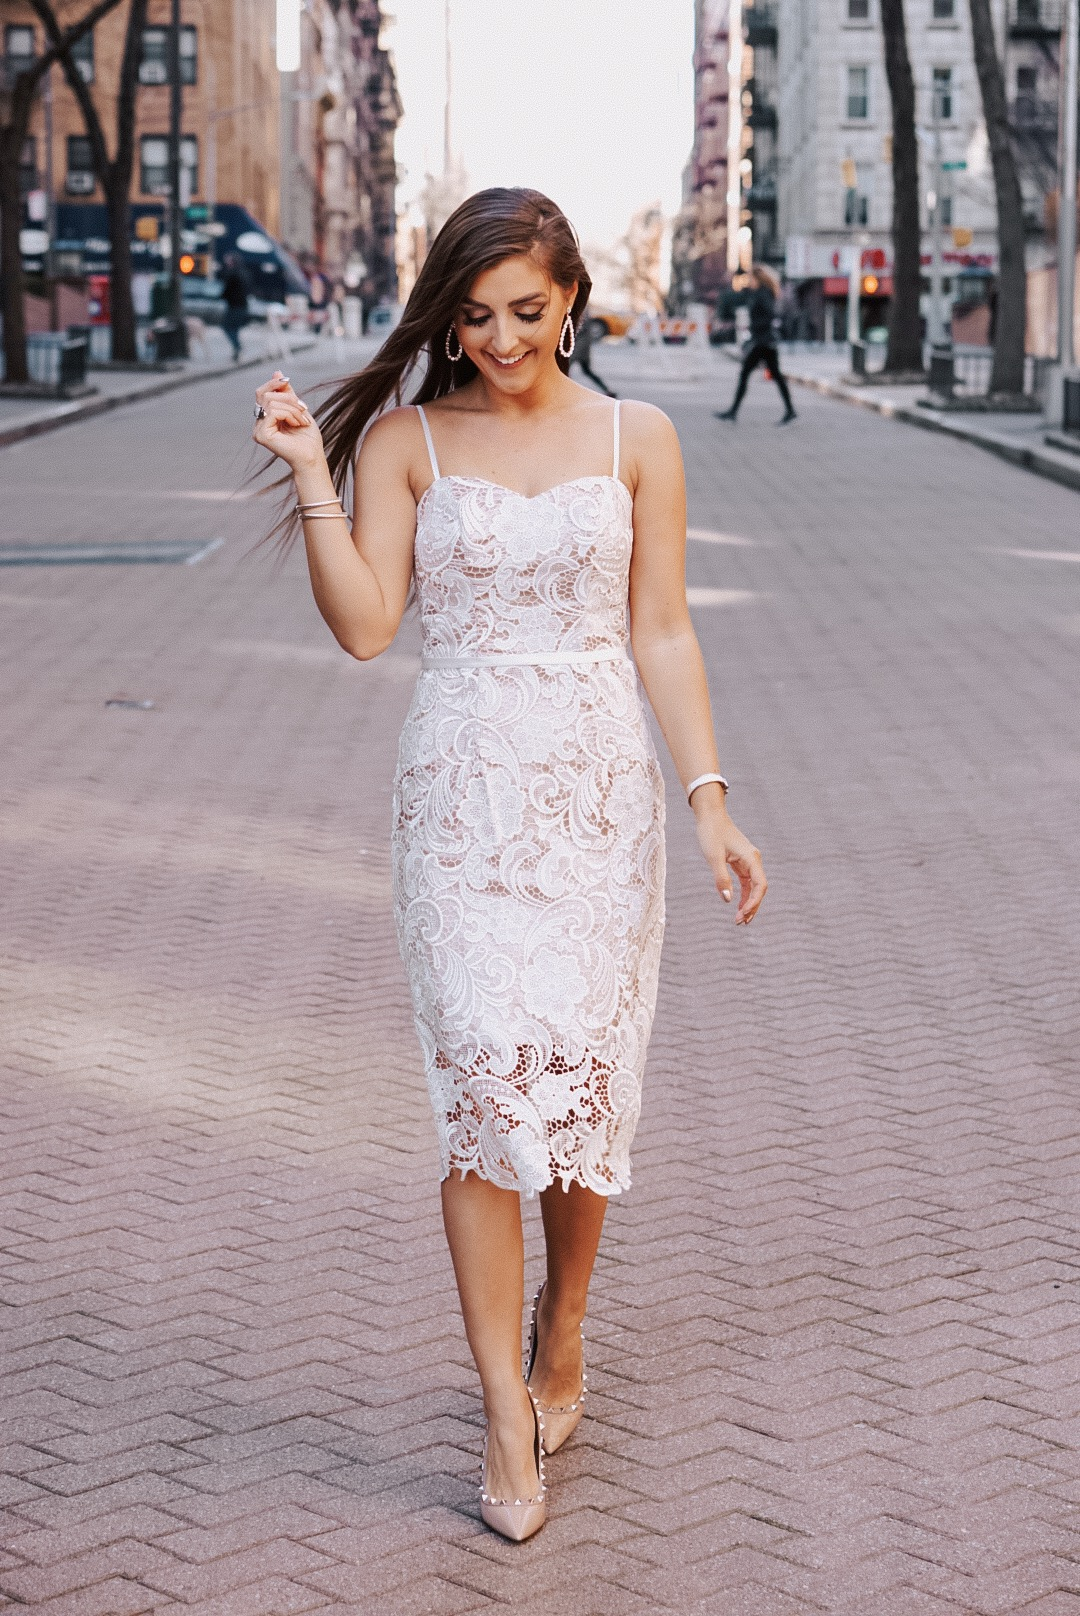 Woman in a short spaghetti strap lace dress standing on a brick road